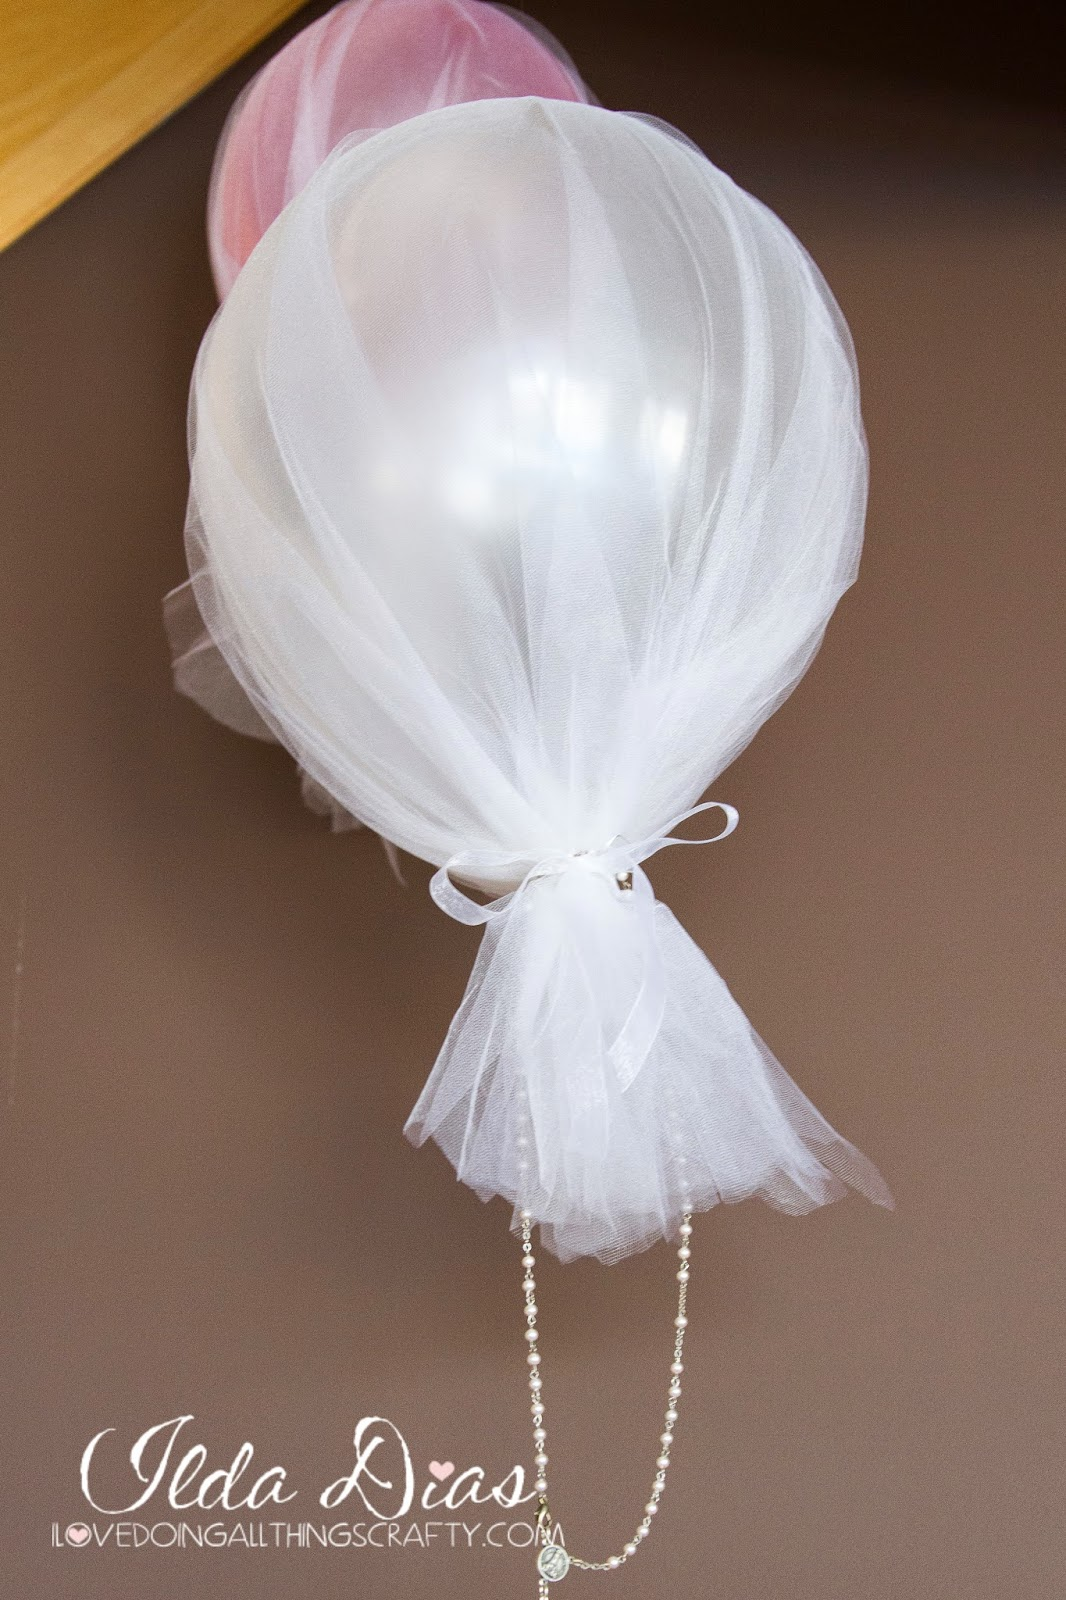 First Communion Day + DIY Decor, Balloons